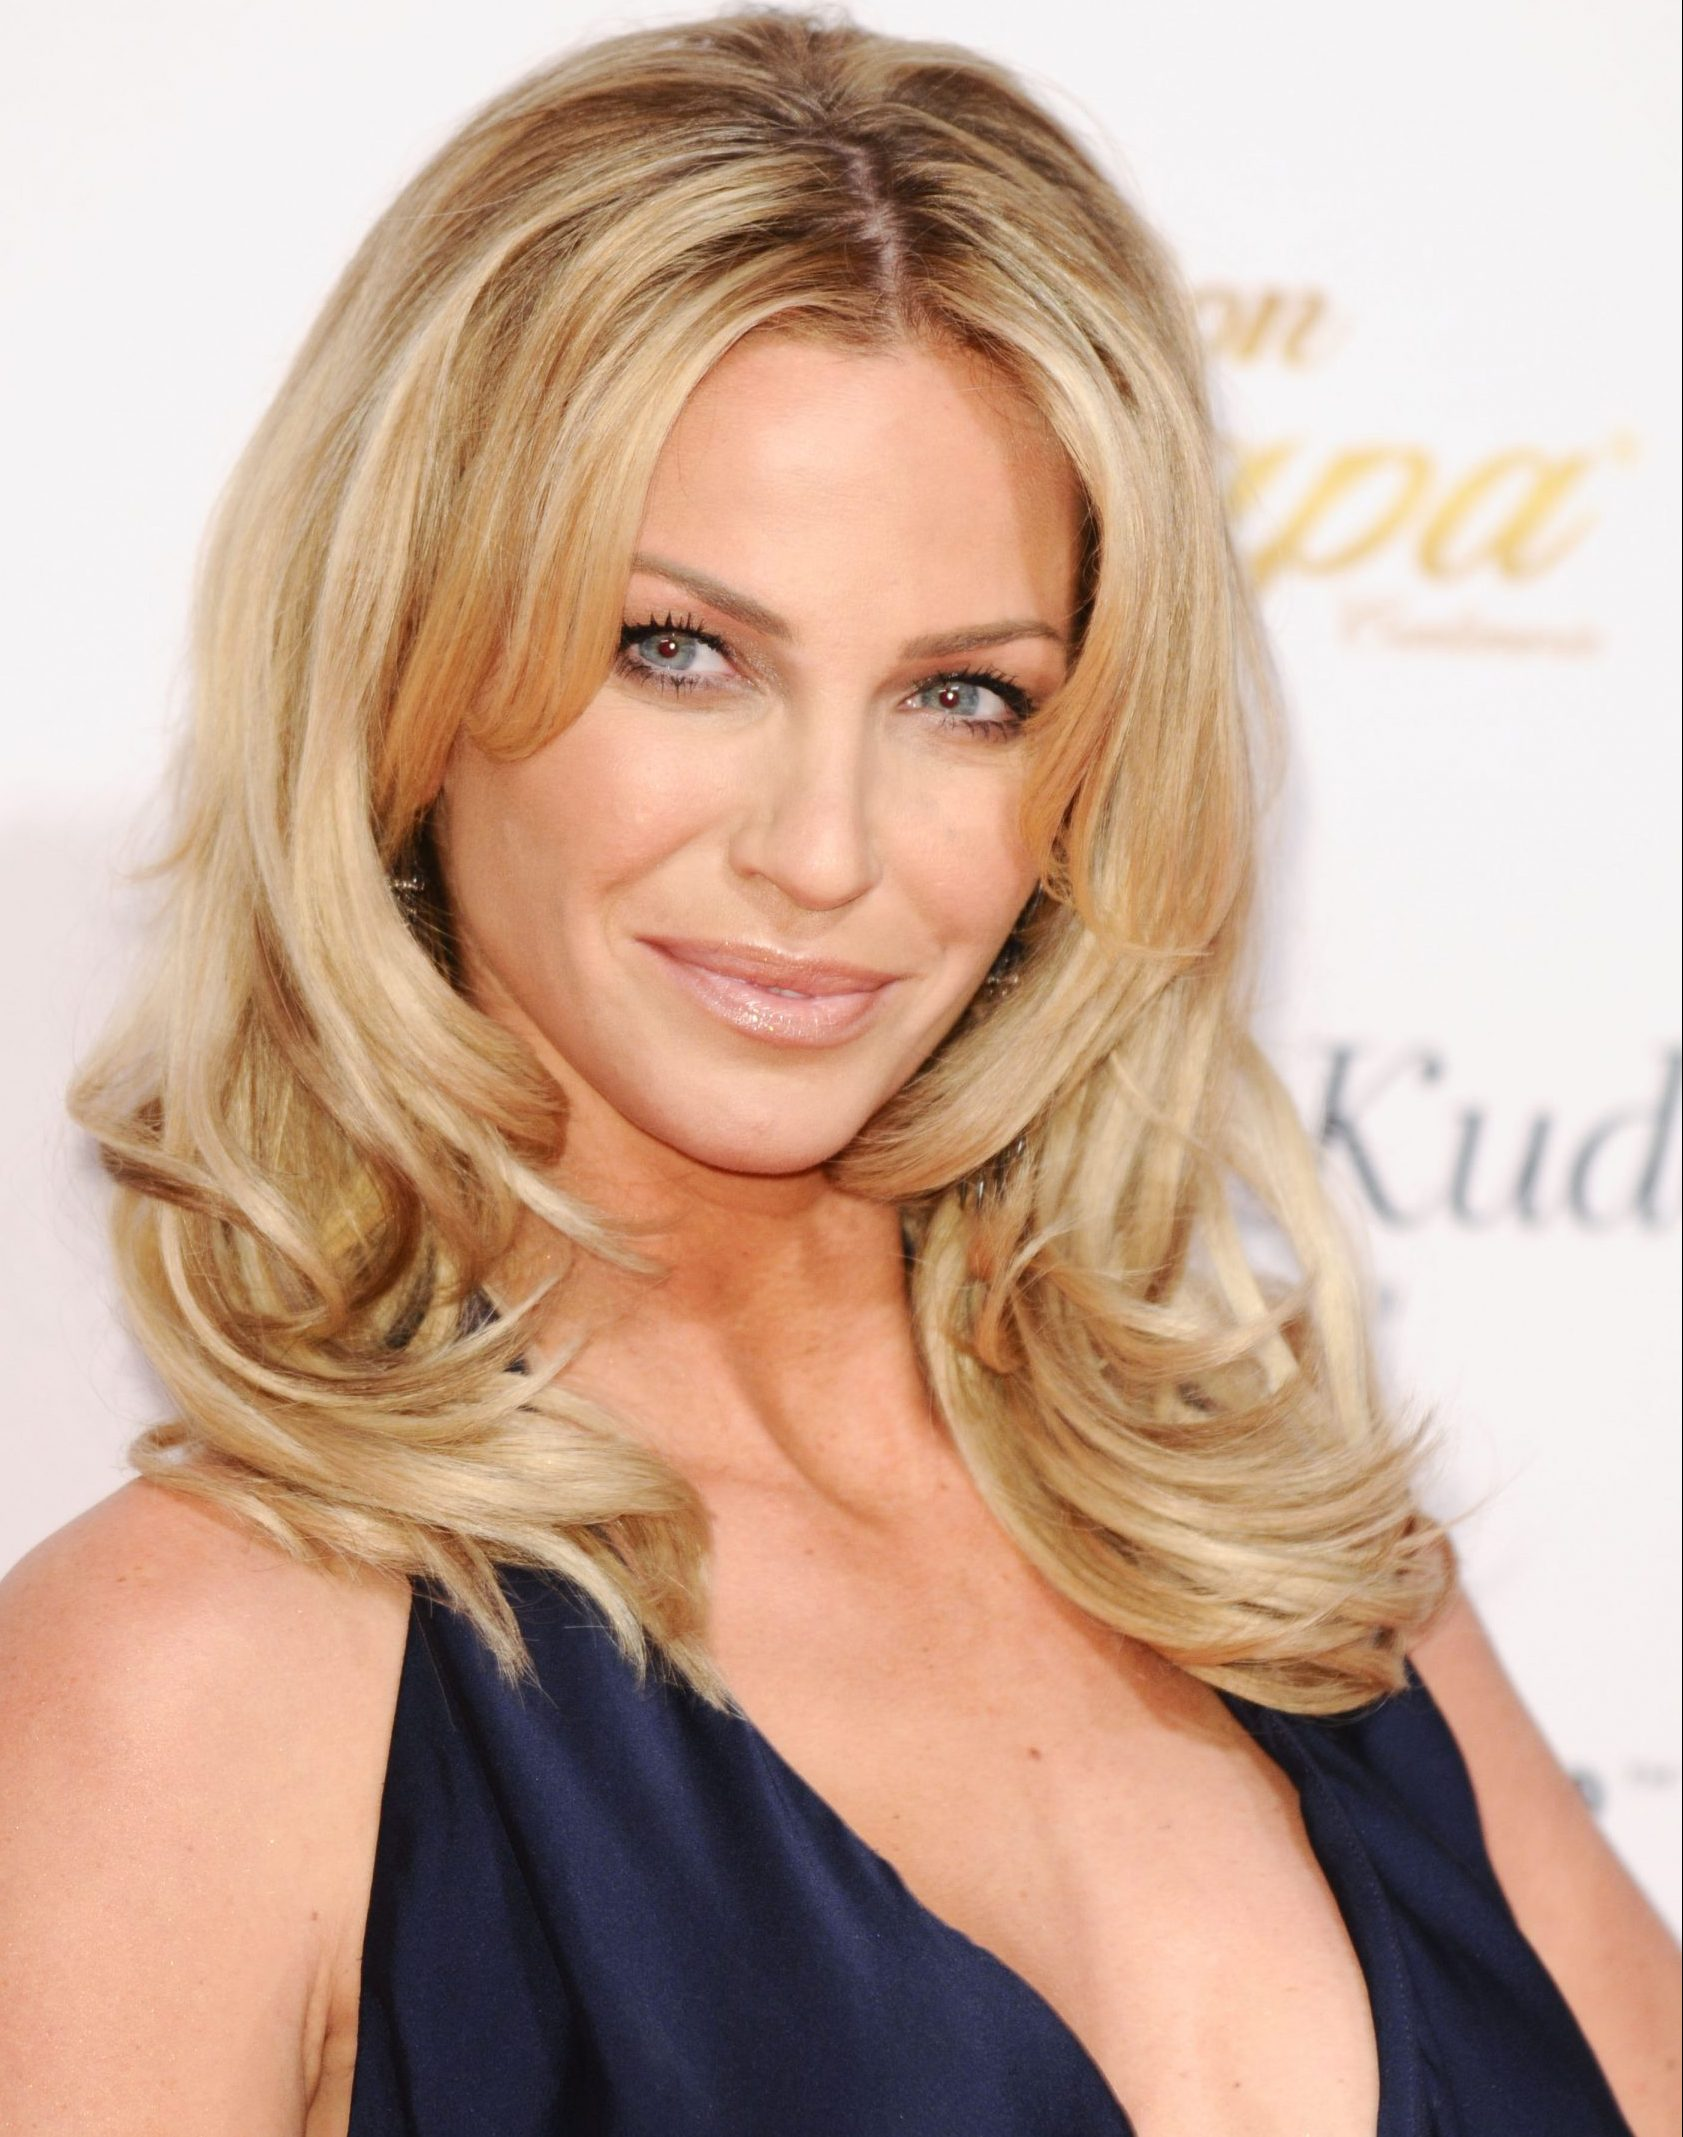 Sarah Harding smiles at a red carpet event. She has layered blonde hair and wears a black dress.